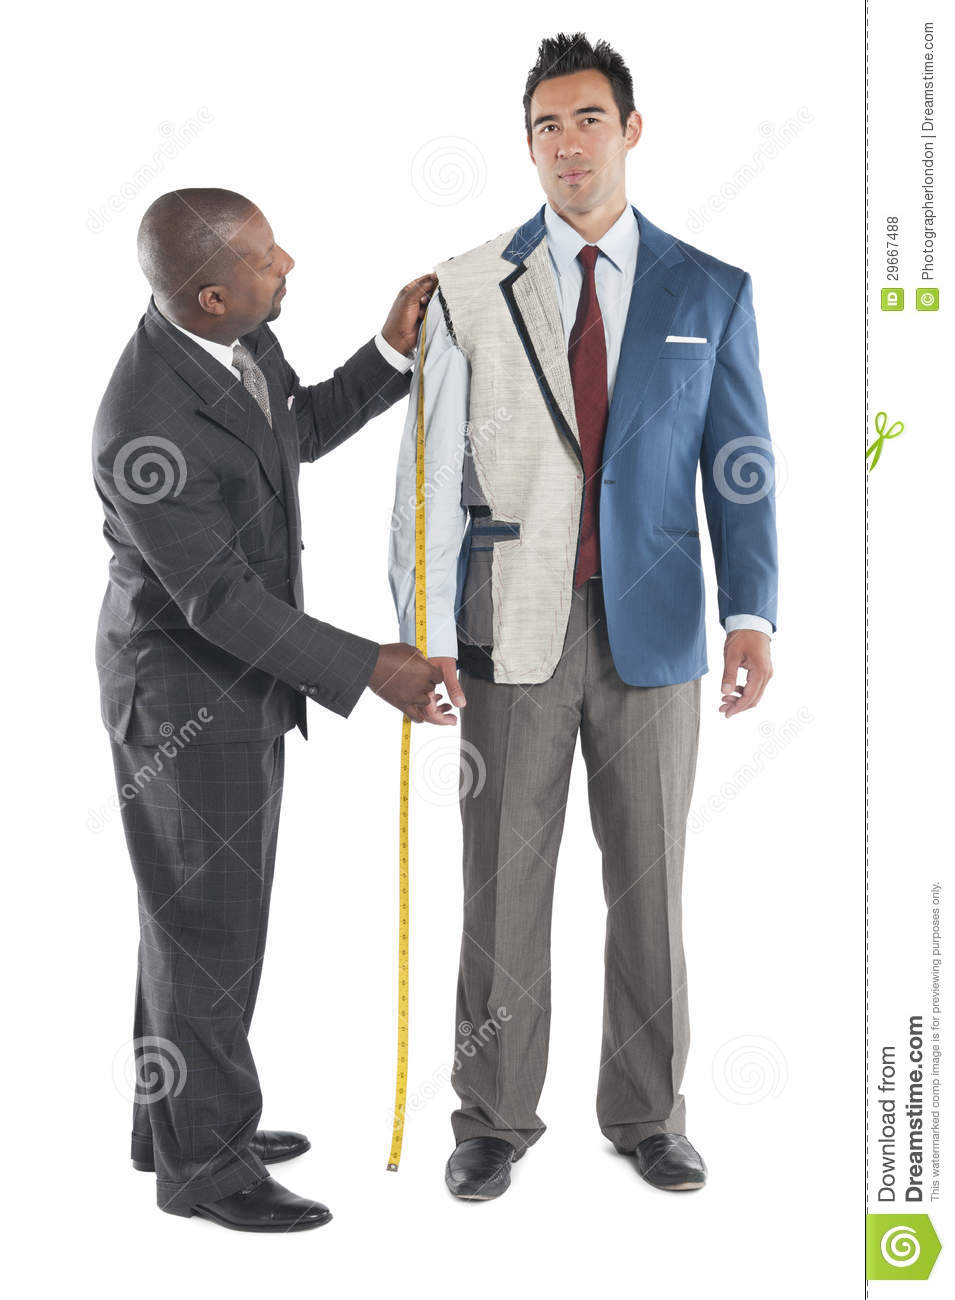 Man Getting Measured By A Tailor On A White Background Royalty Free Stock Photos